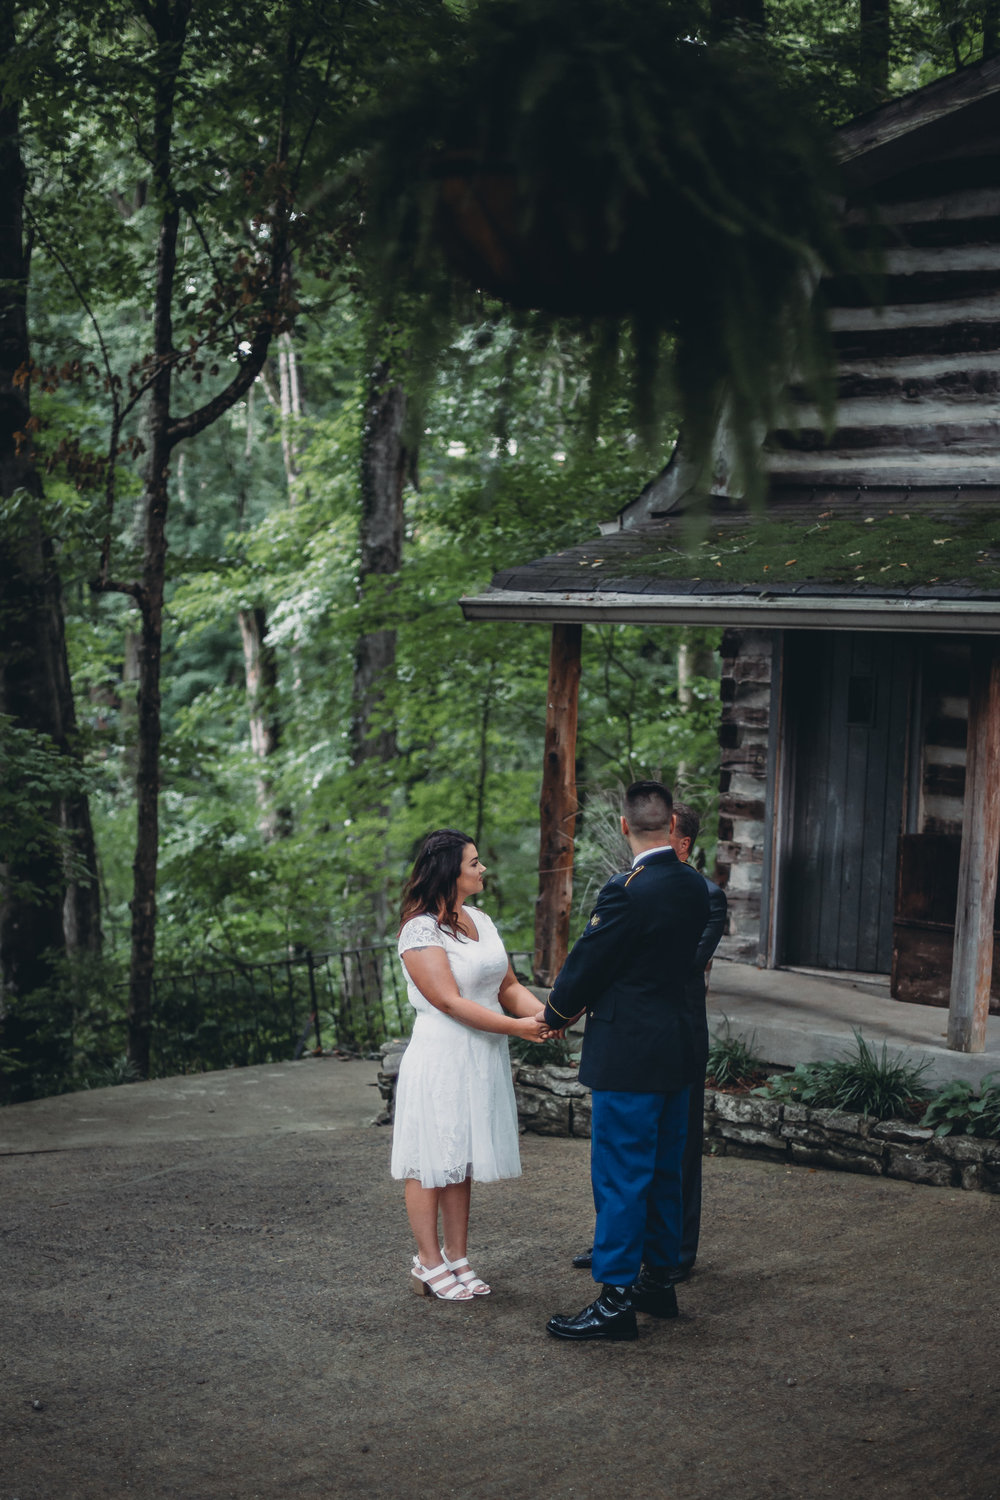 elopement ceremony at Tanglewood house in clarksville tn